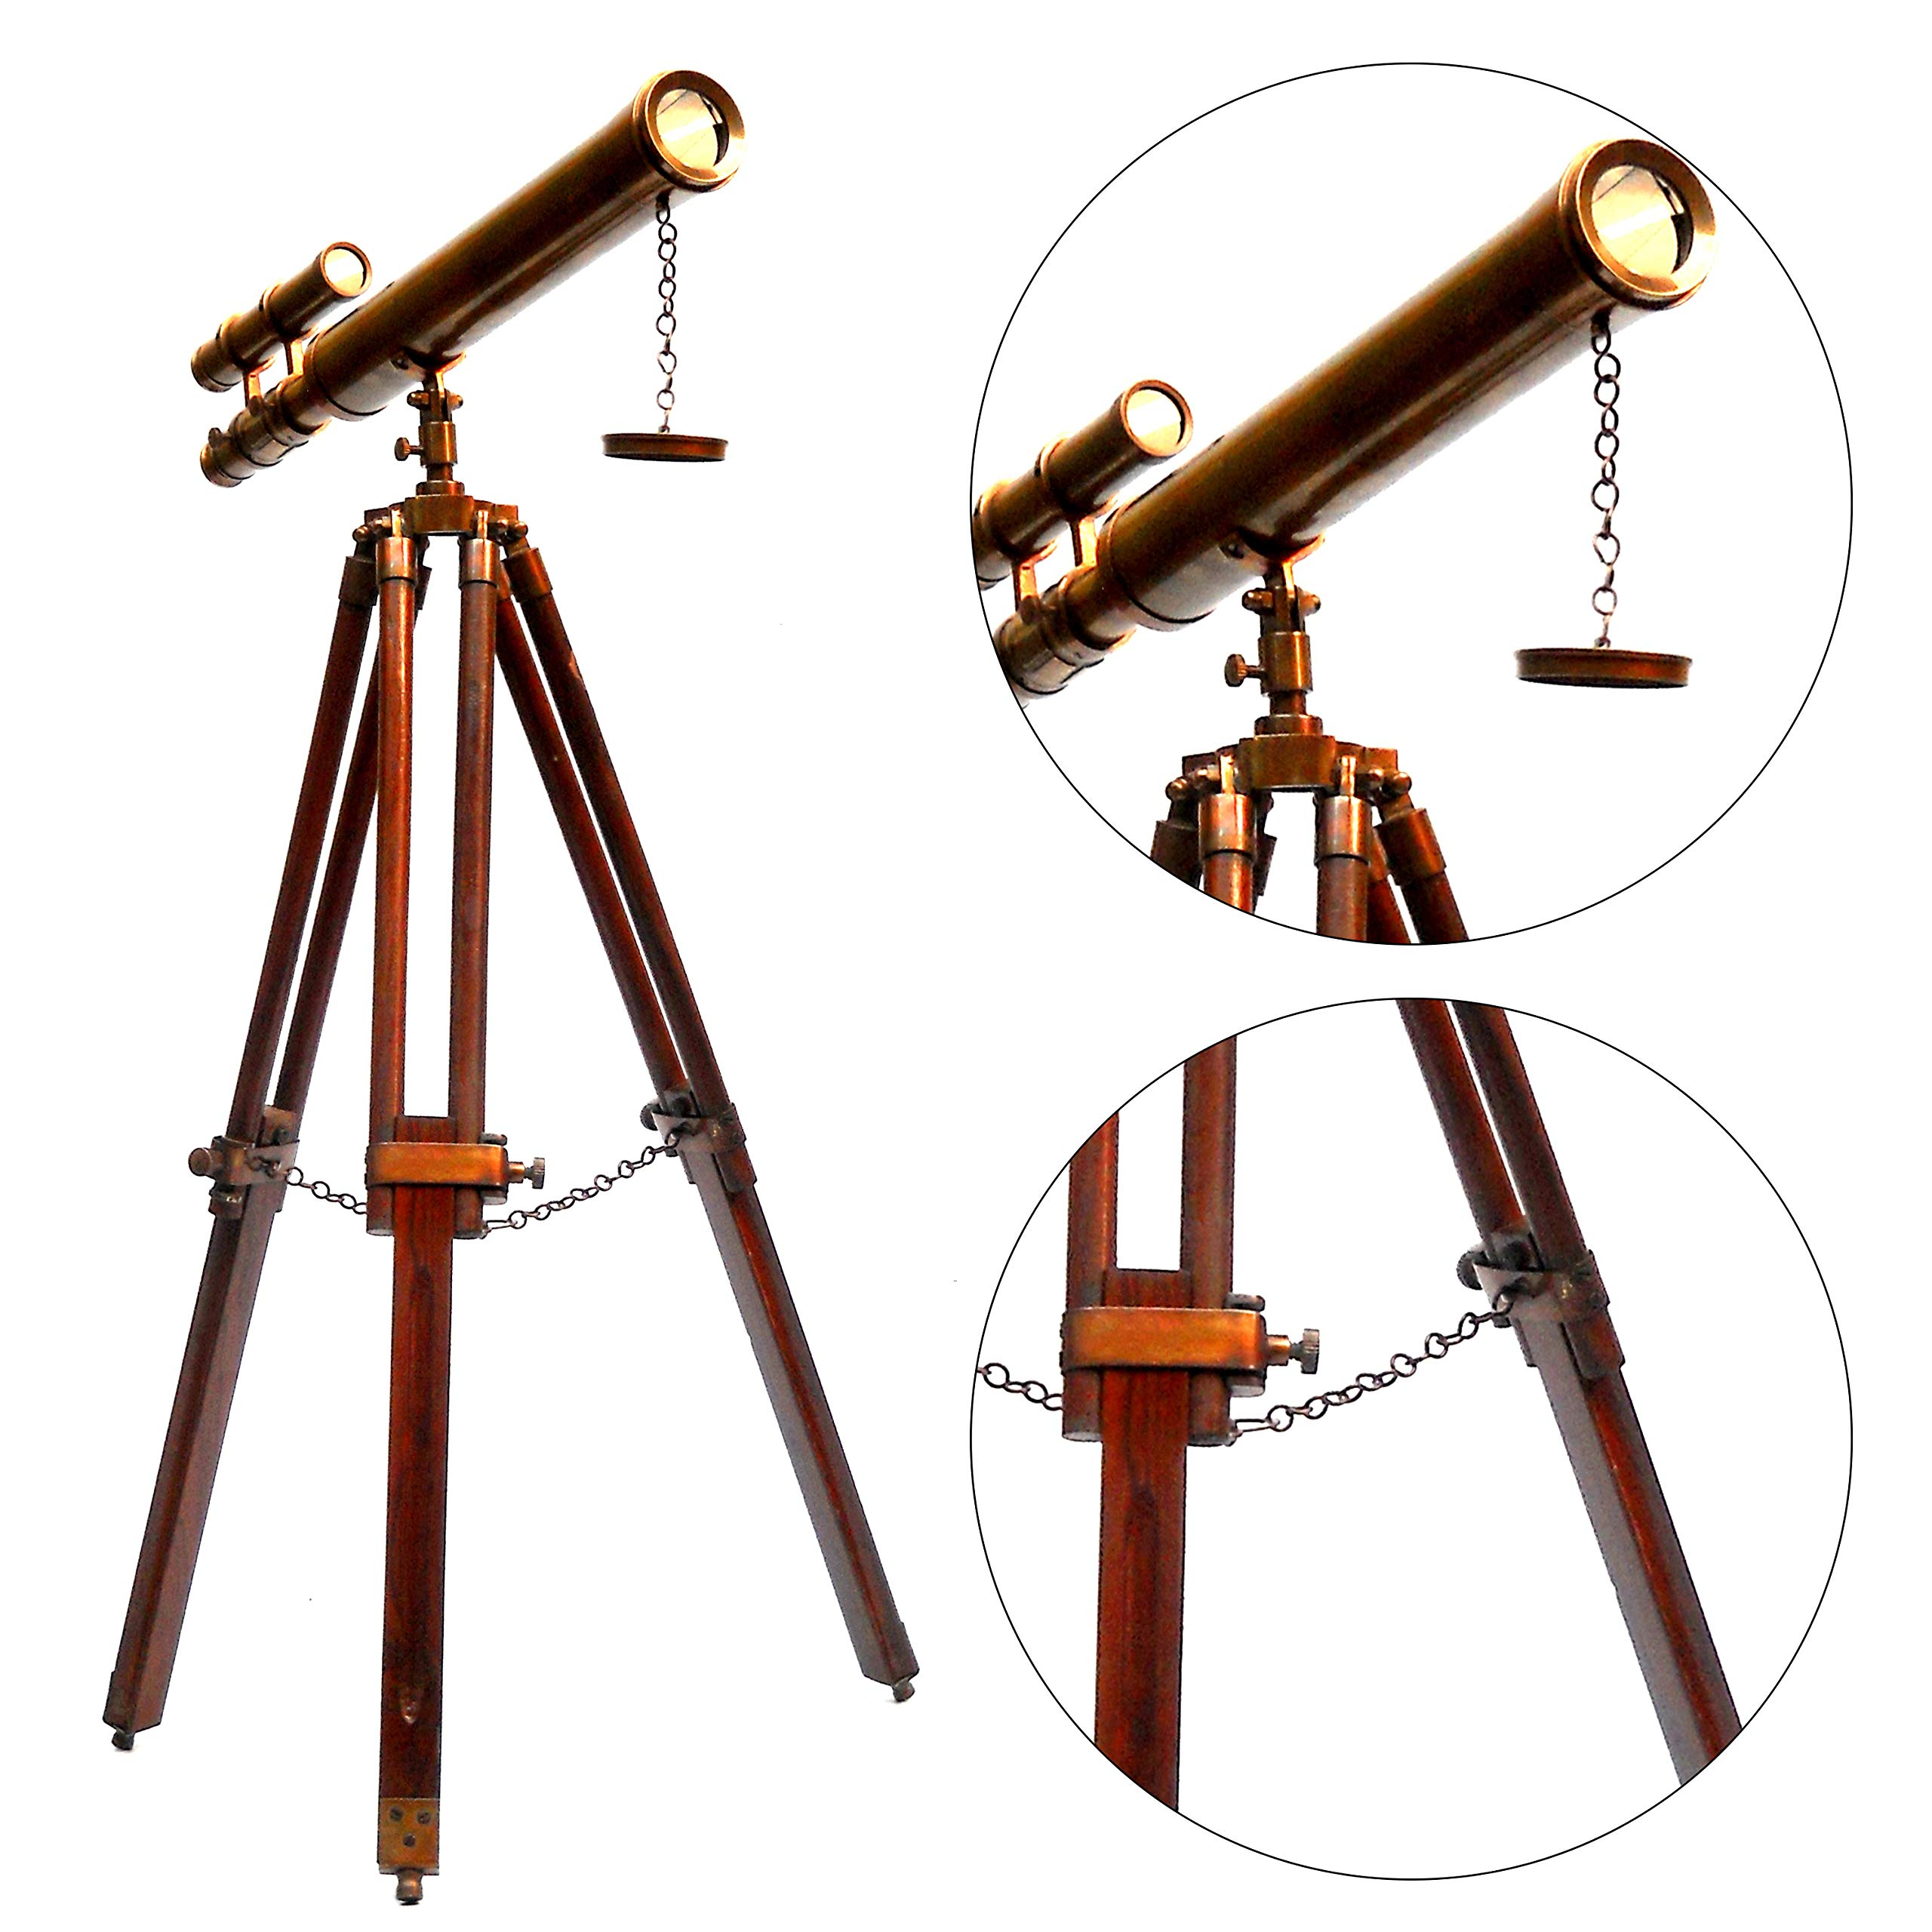 Antique Marine Wooden Tripod Telescope Vintage Handmade Double Barrel Handicraft Article - Collectible by Collectibles Buy